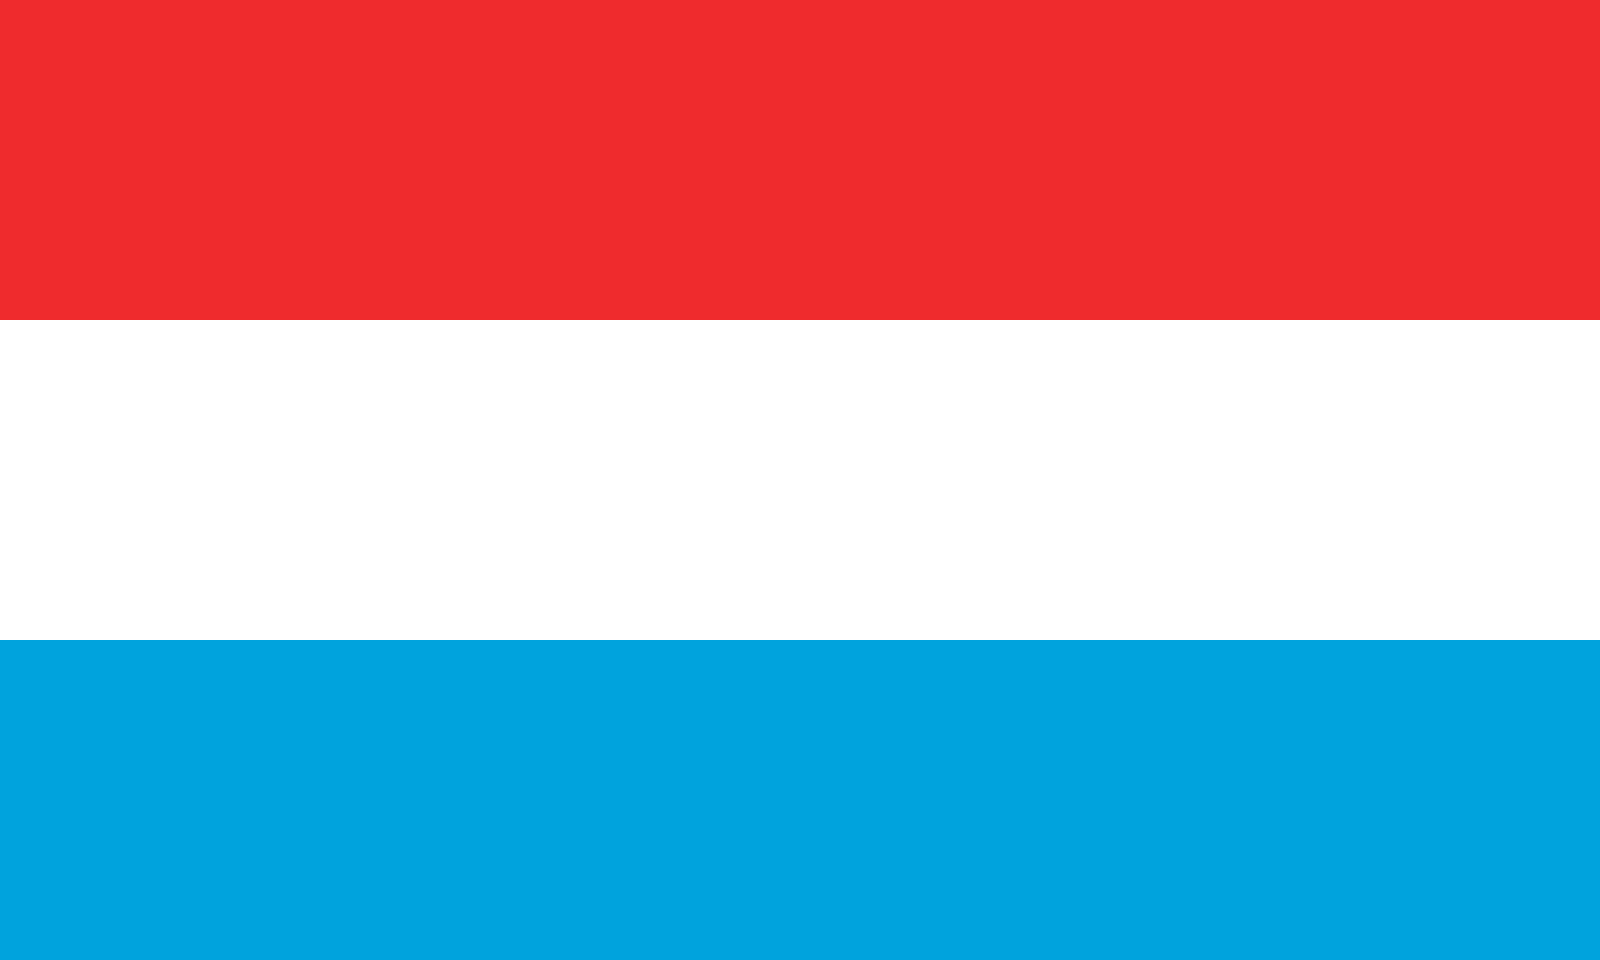 Luxembourger Flag